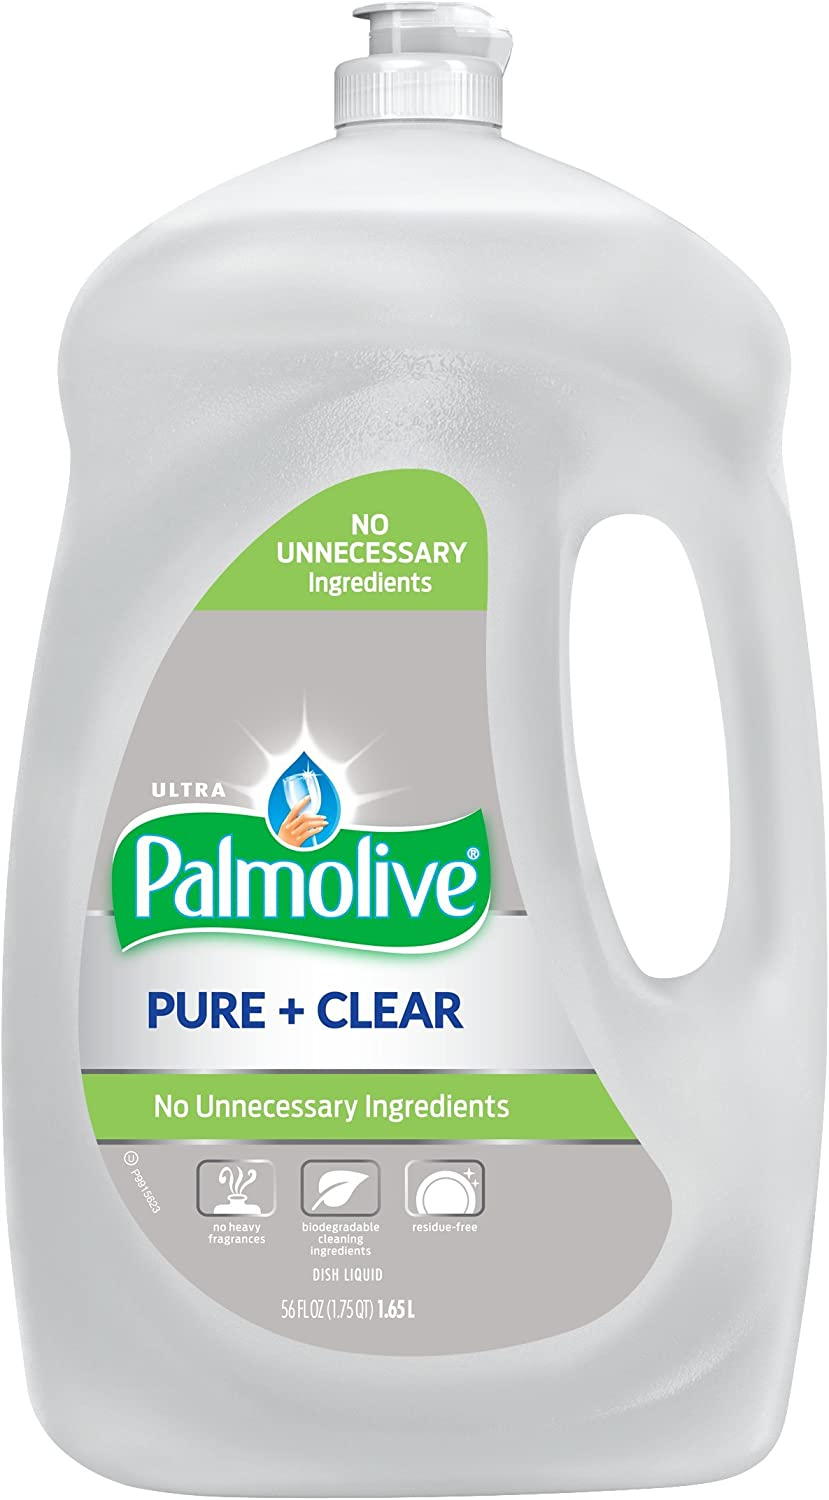 Palmolive Ultra Liquid Dish Soap, Pure and Clear - 56 Fluid Ounce